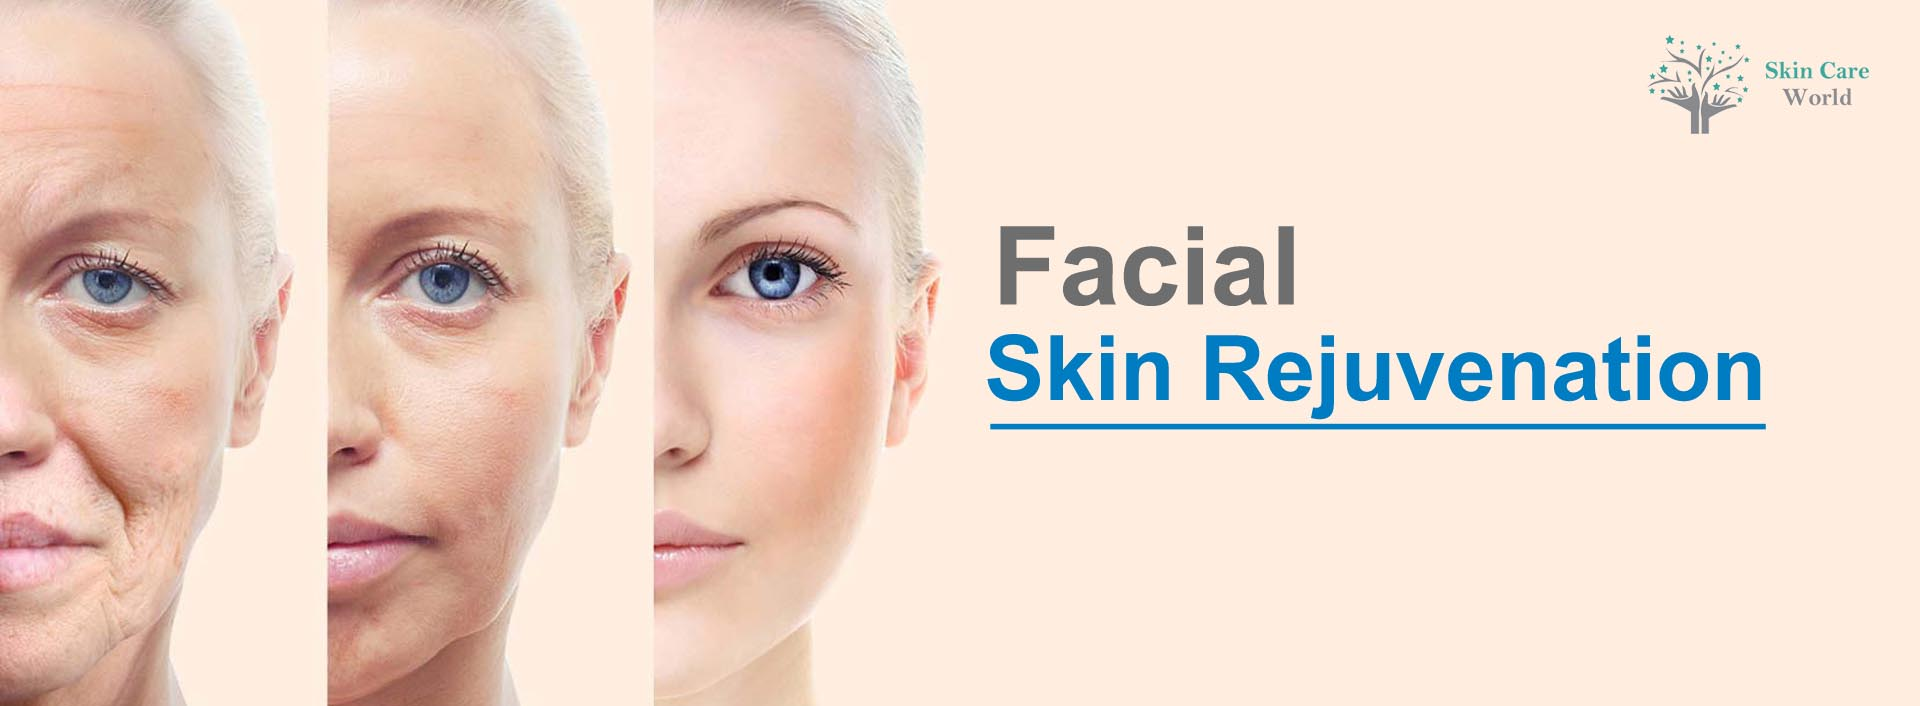 Facial Skin Rejuvenation in Gurgaon